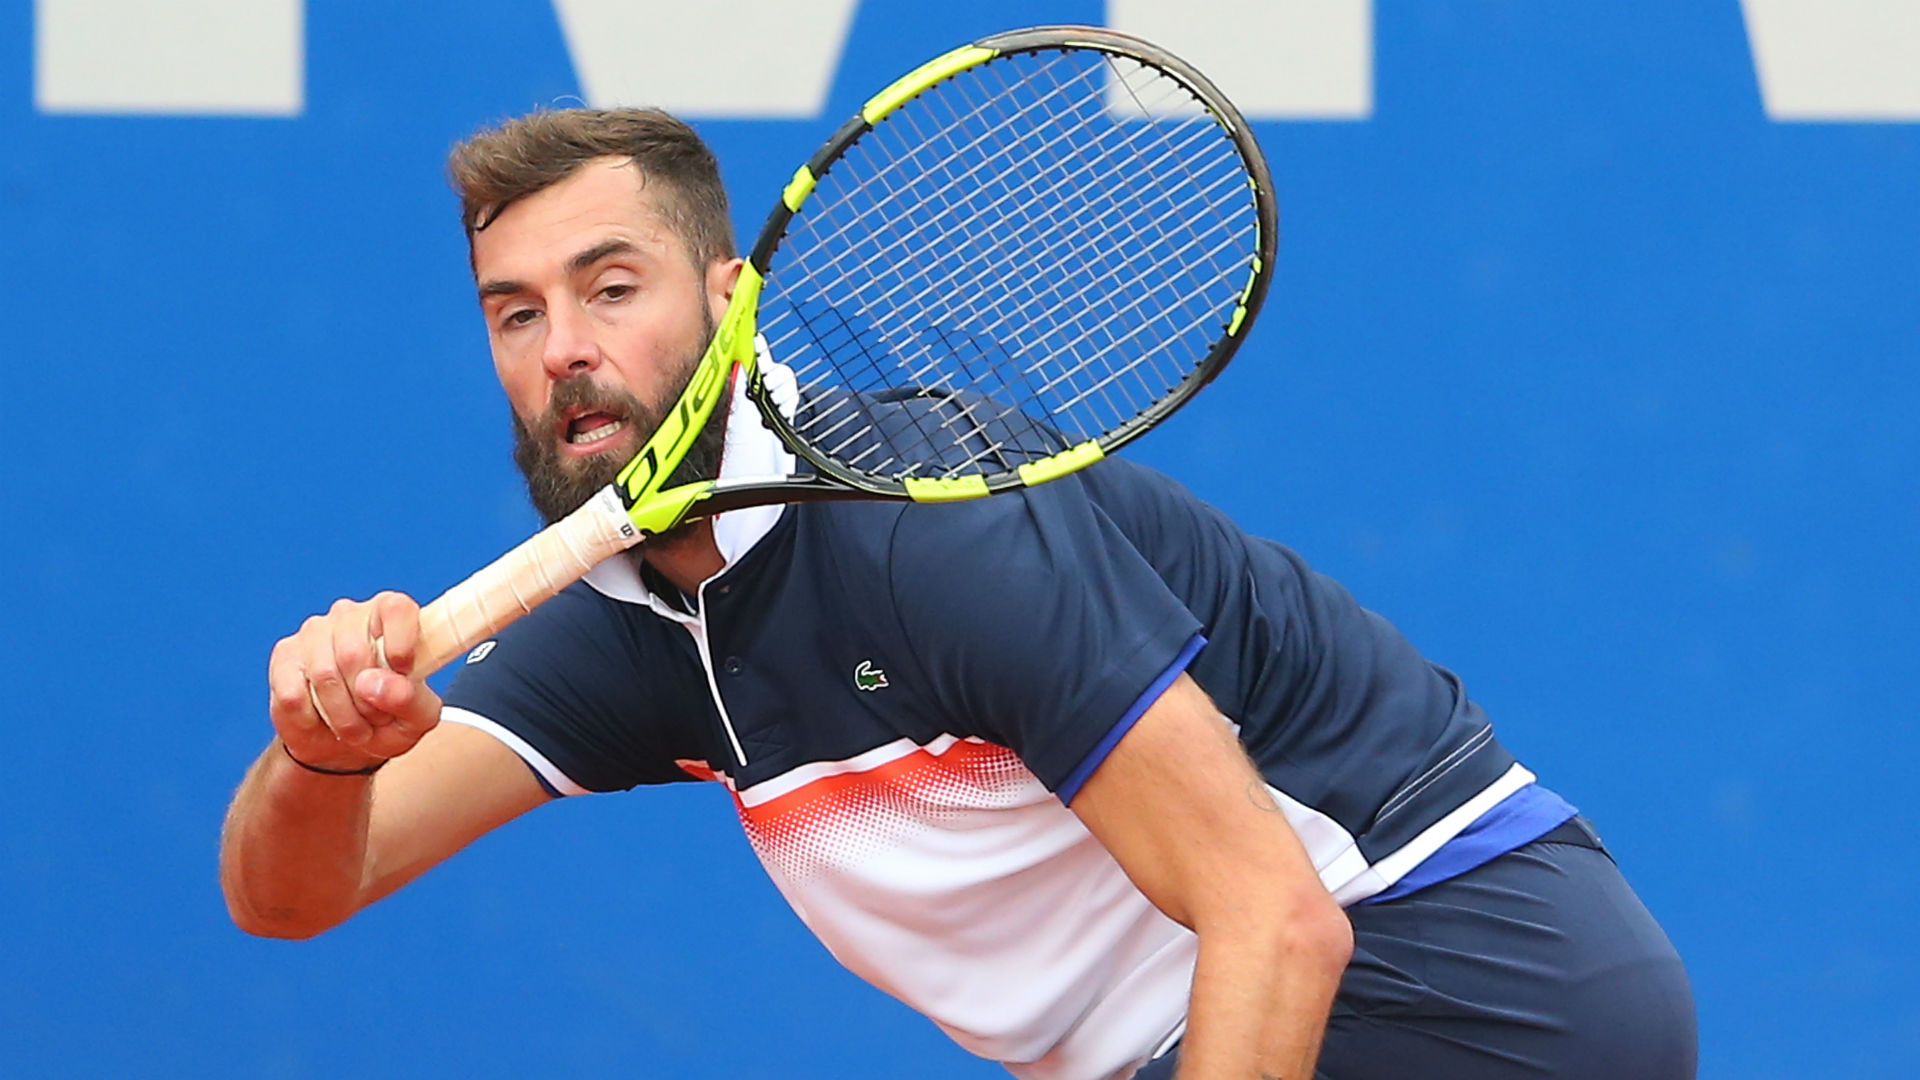 Paire picks off Auger Aliassime in Lyon final